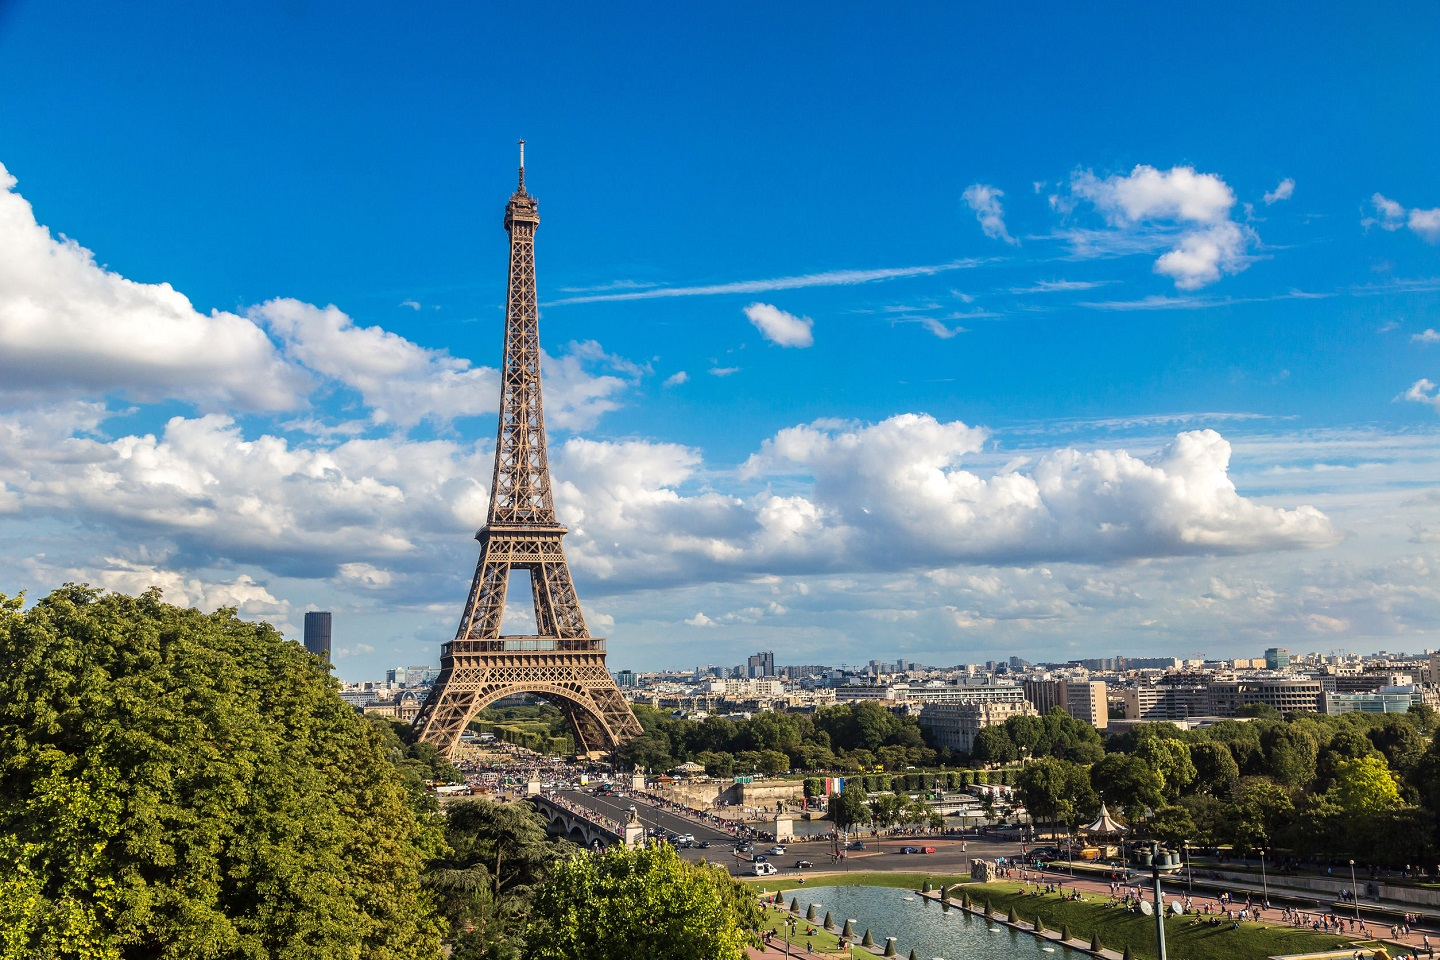 Luxury 3 Day Paris Tour